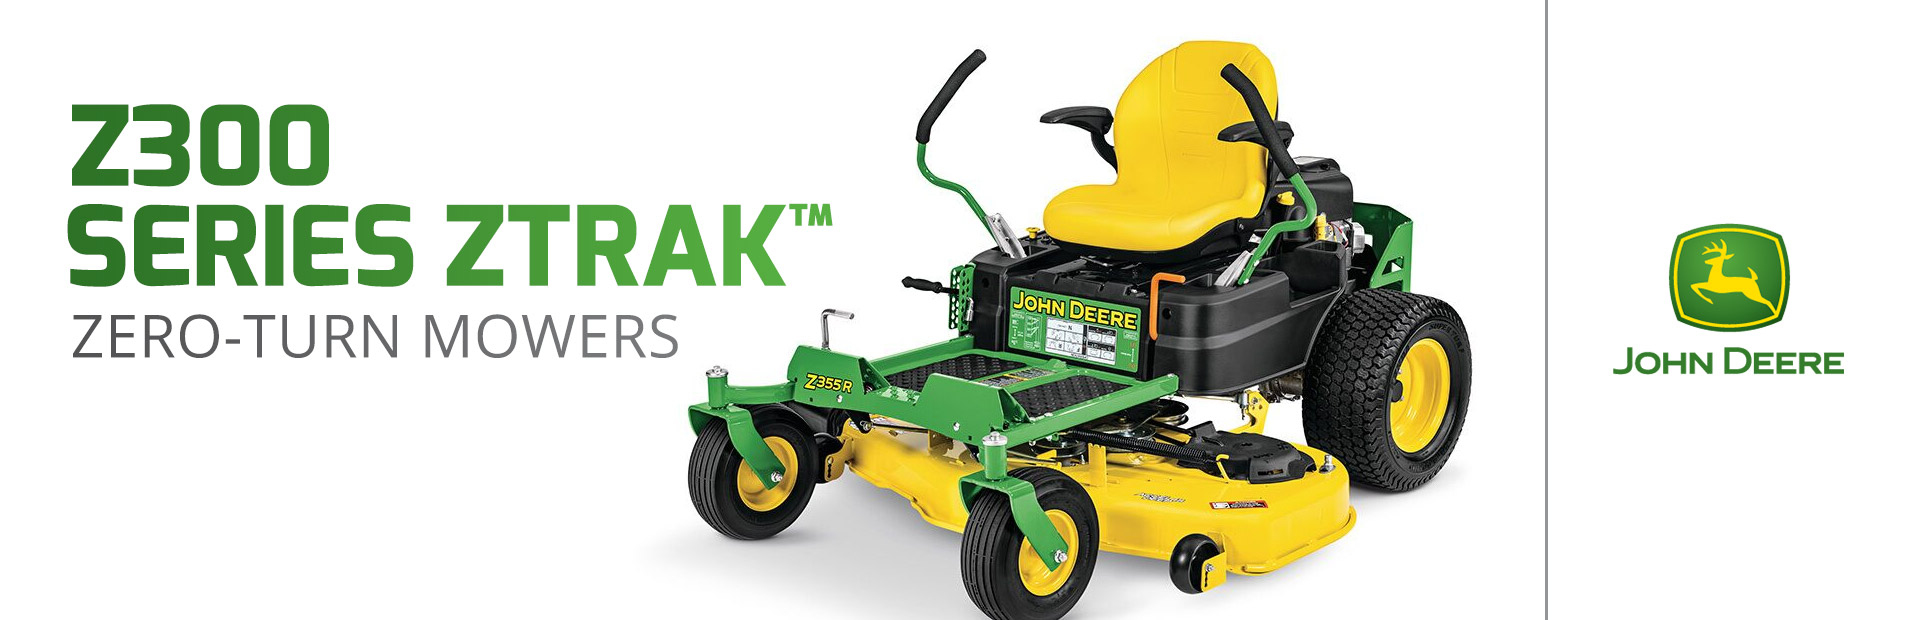 Z300 Series ZTrak™ Zero-Turn Mowers